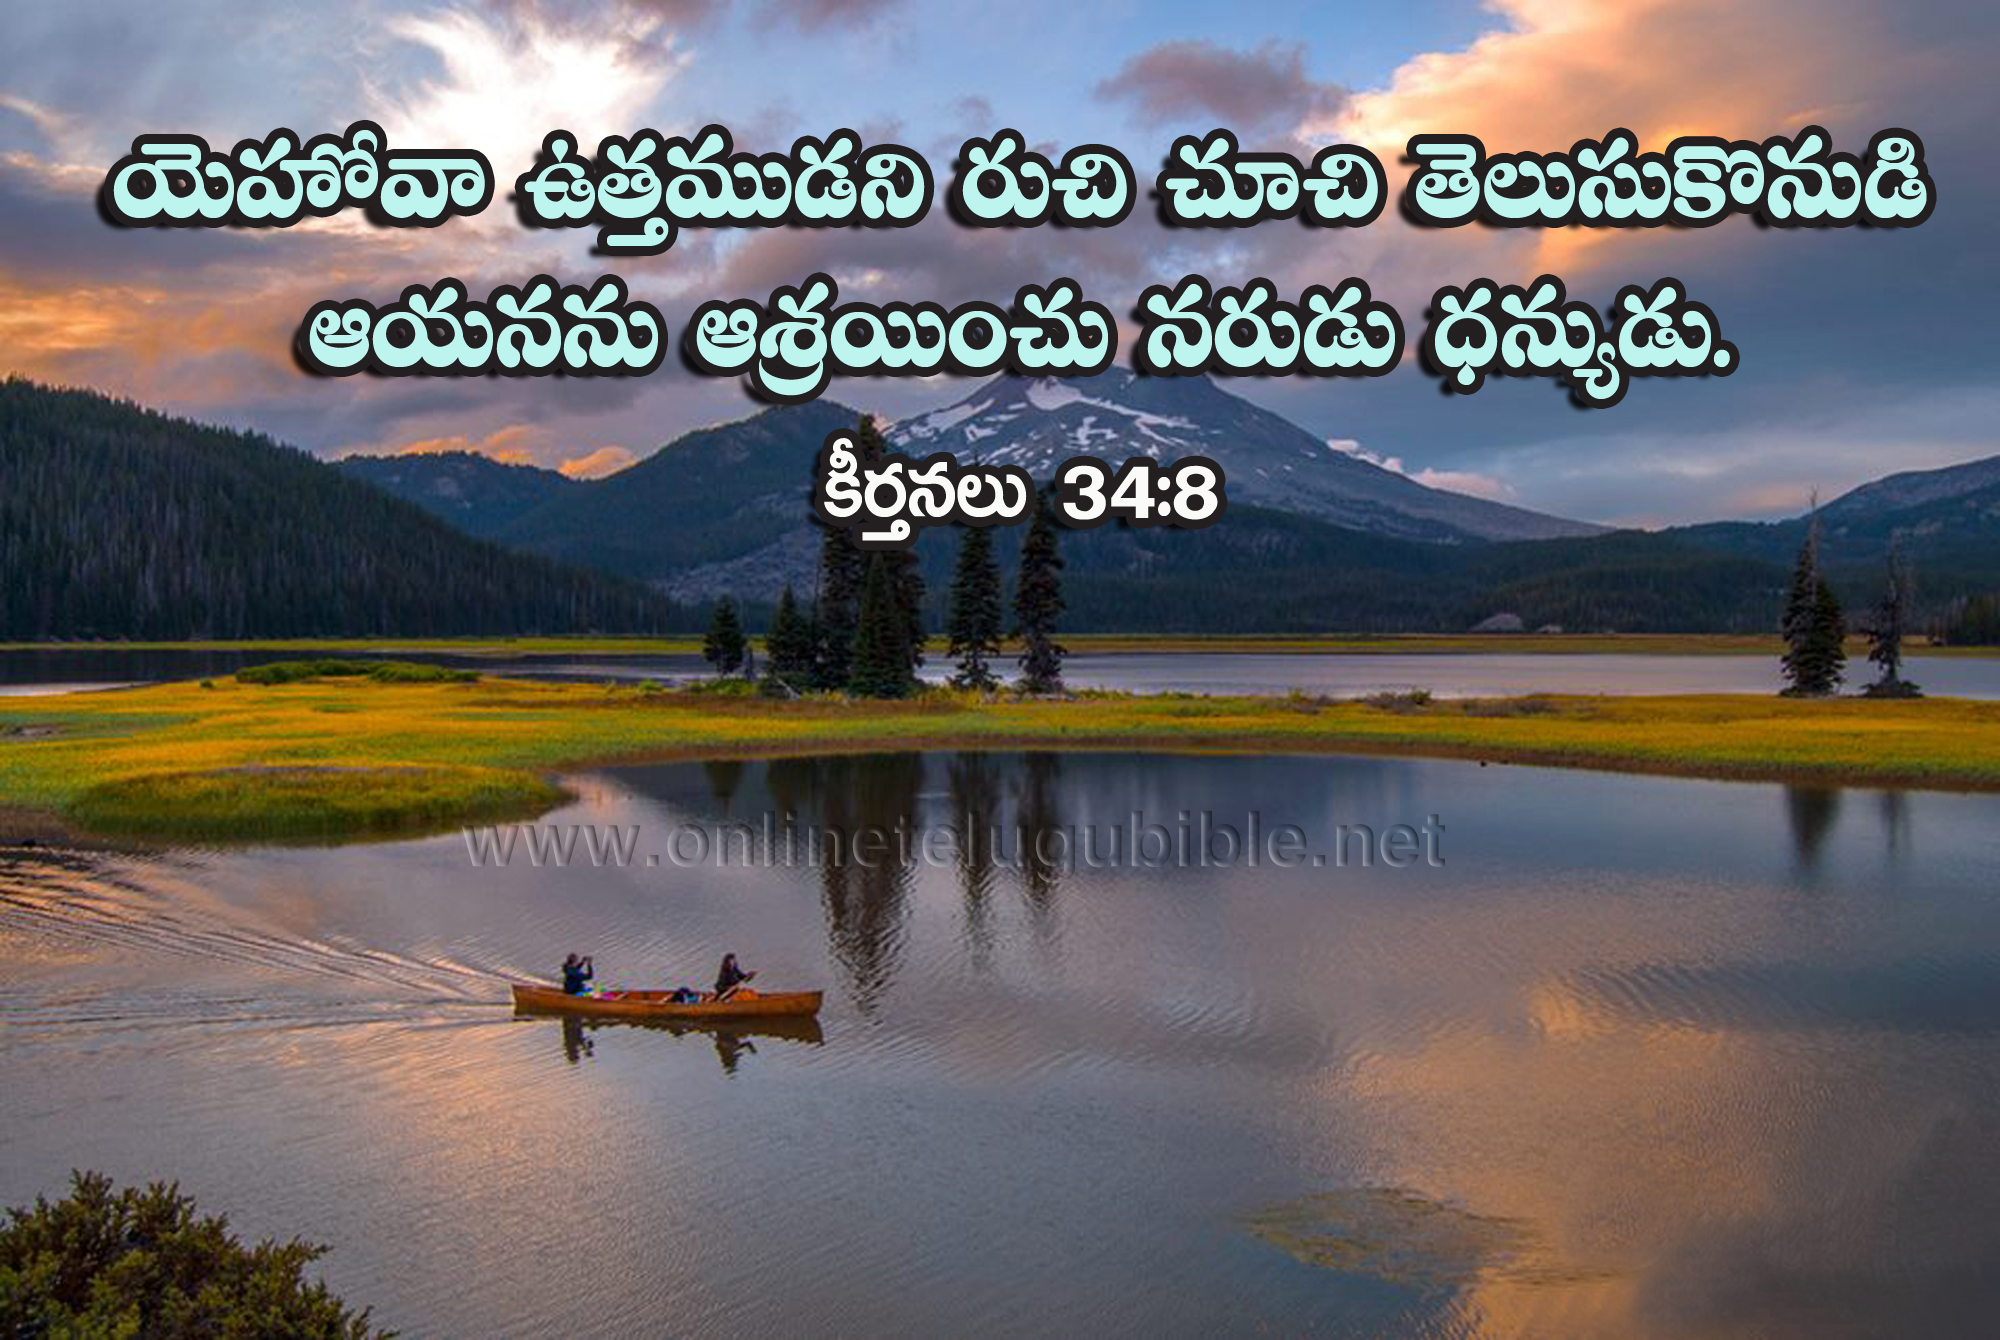 Steelers Wallpaper Hd Download Telugu Bible Words Wallpapers Gallery